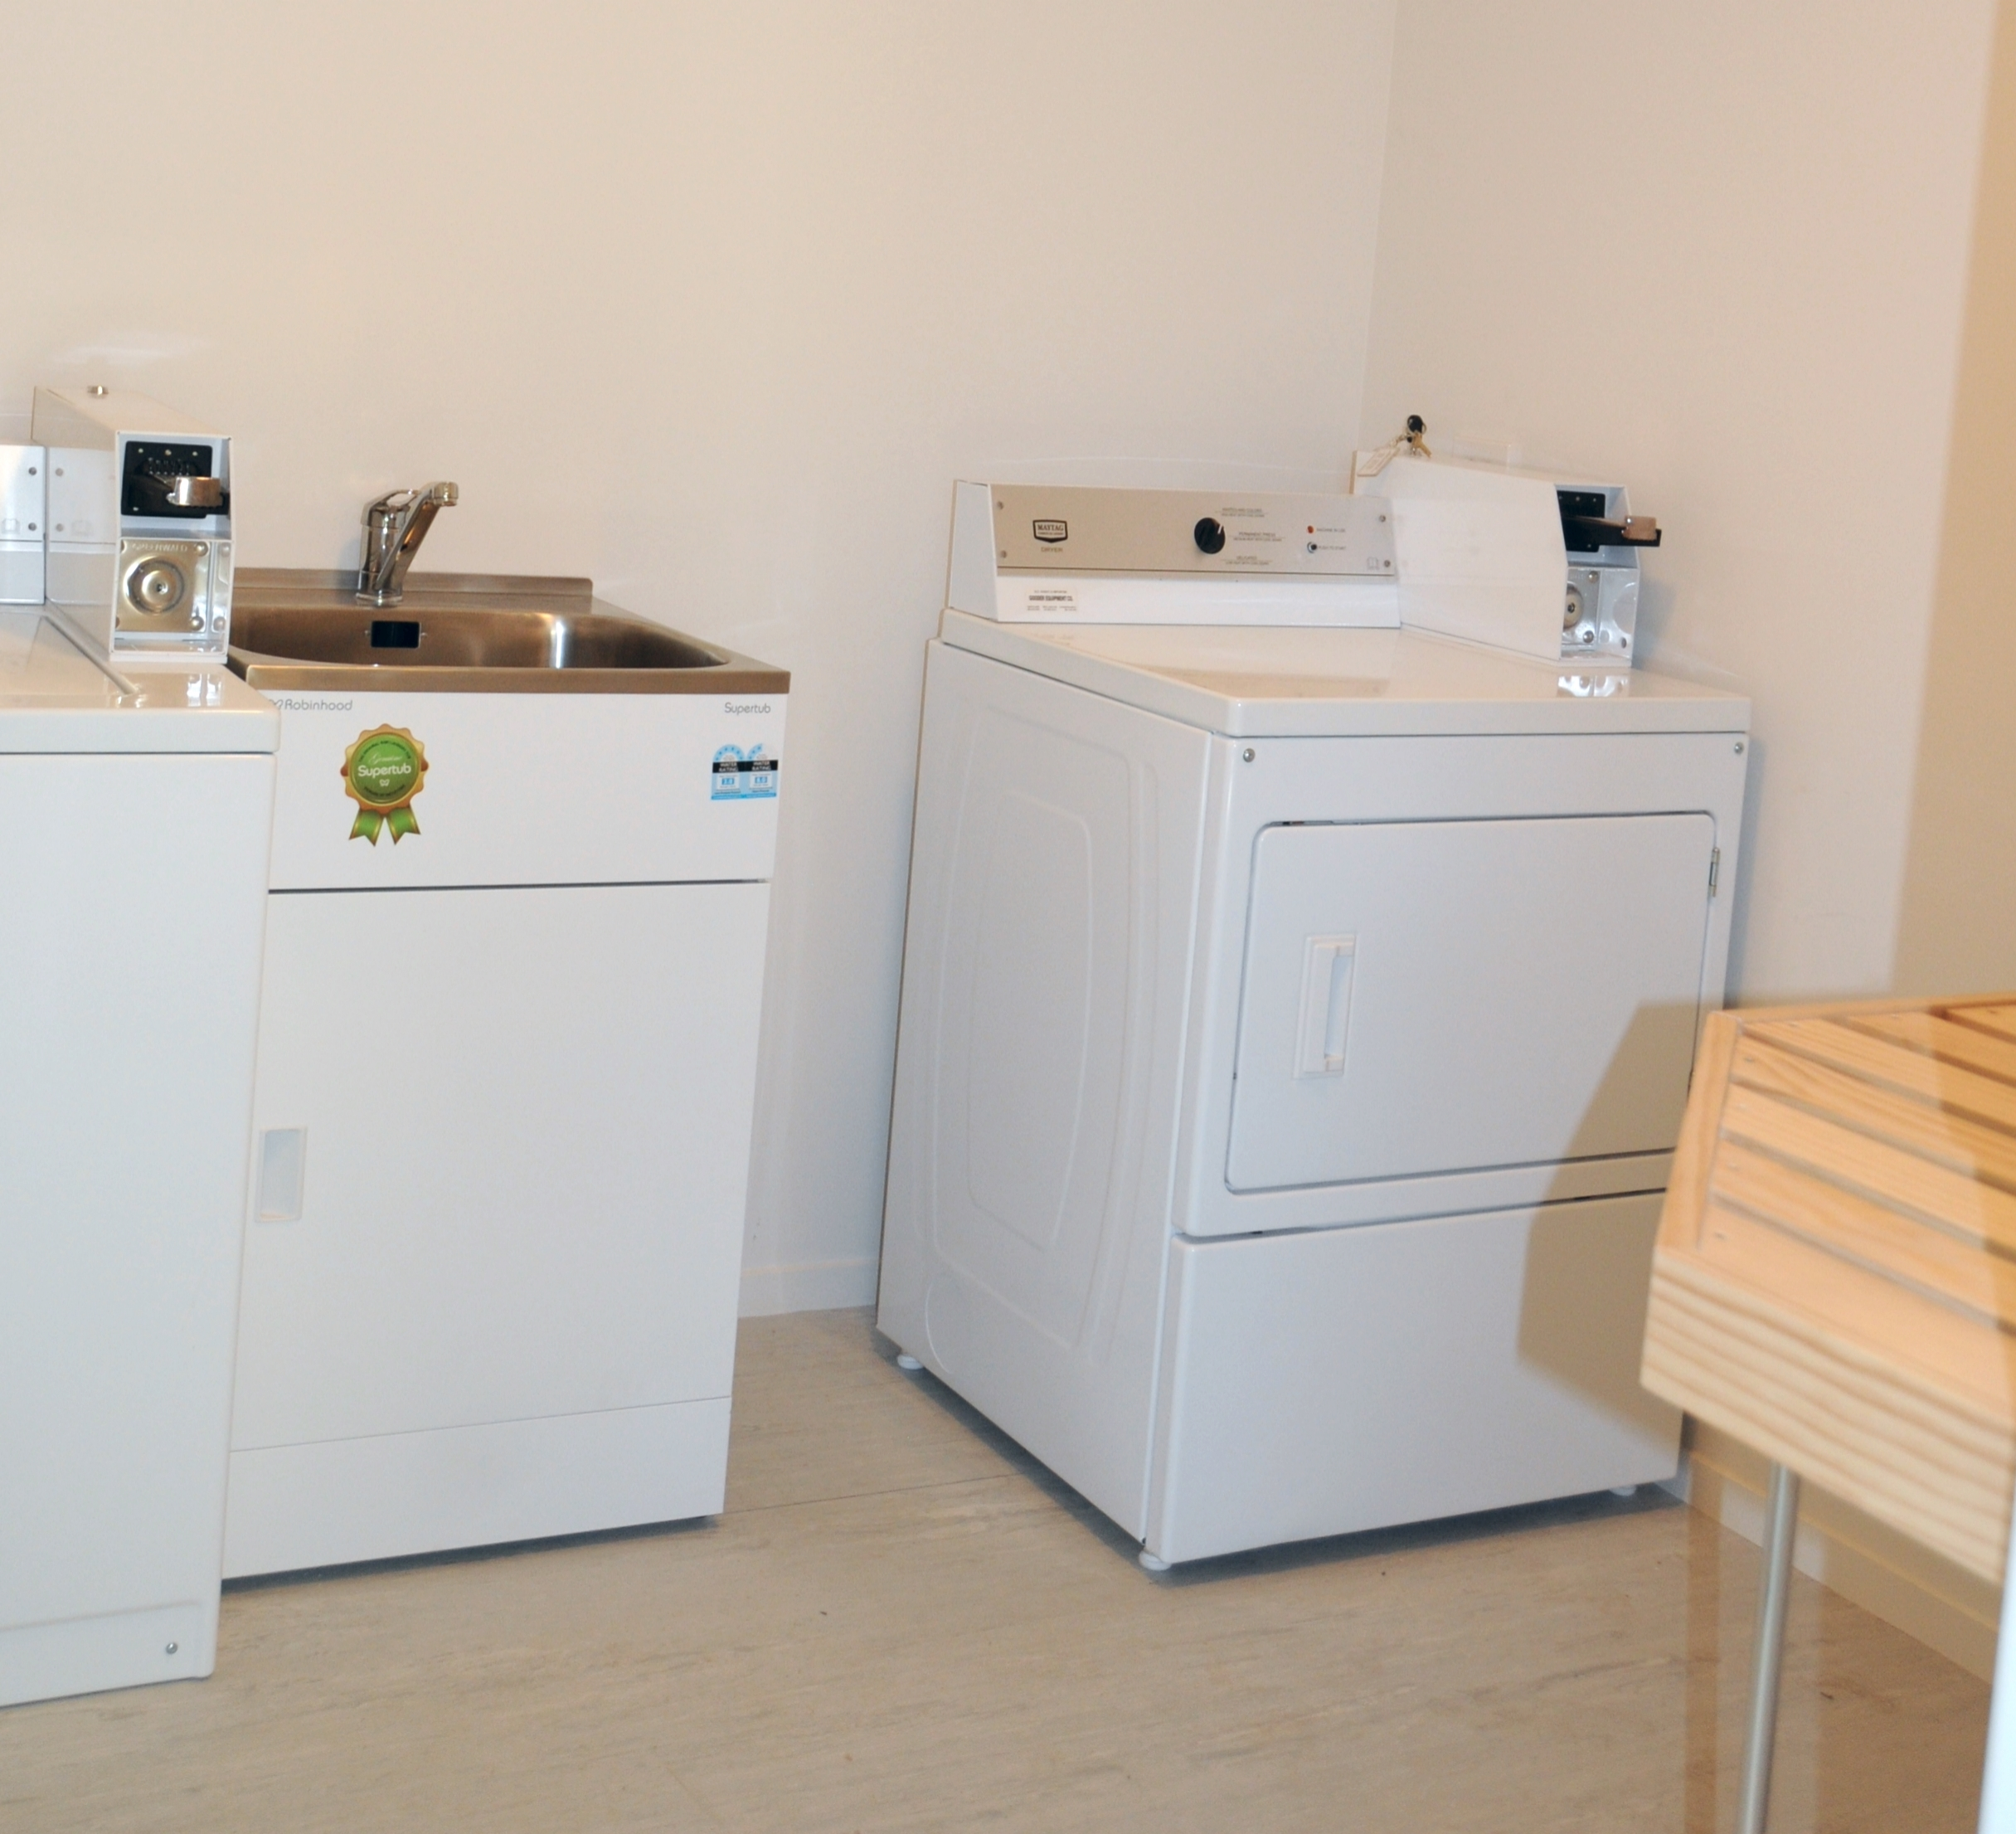 Laundry with coin operated washer and dryer